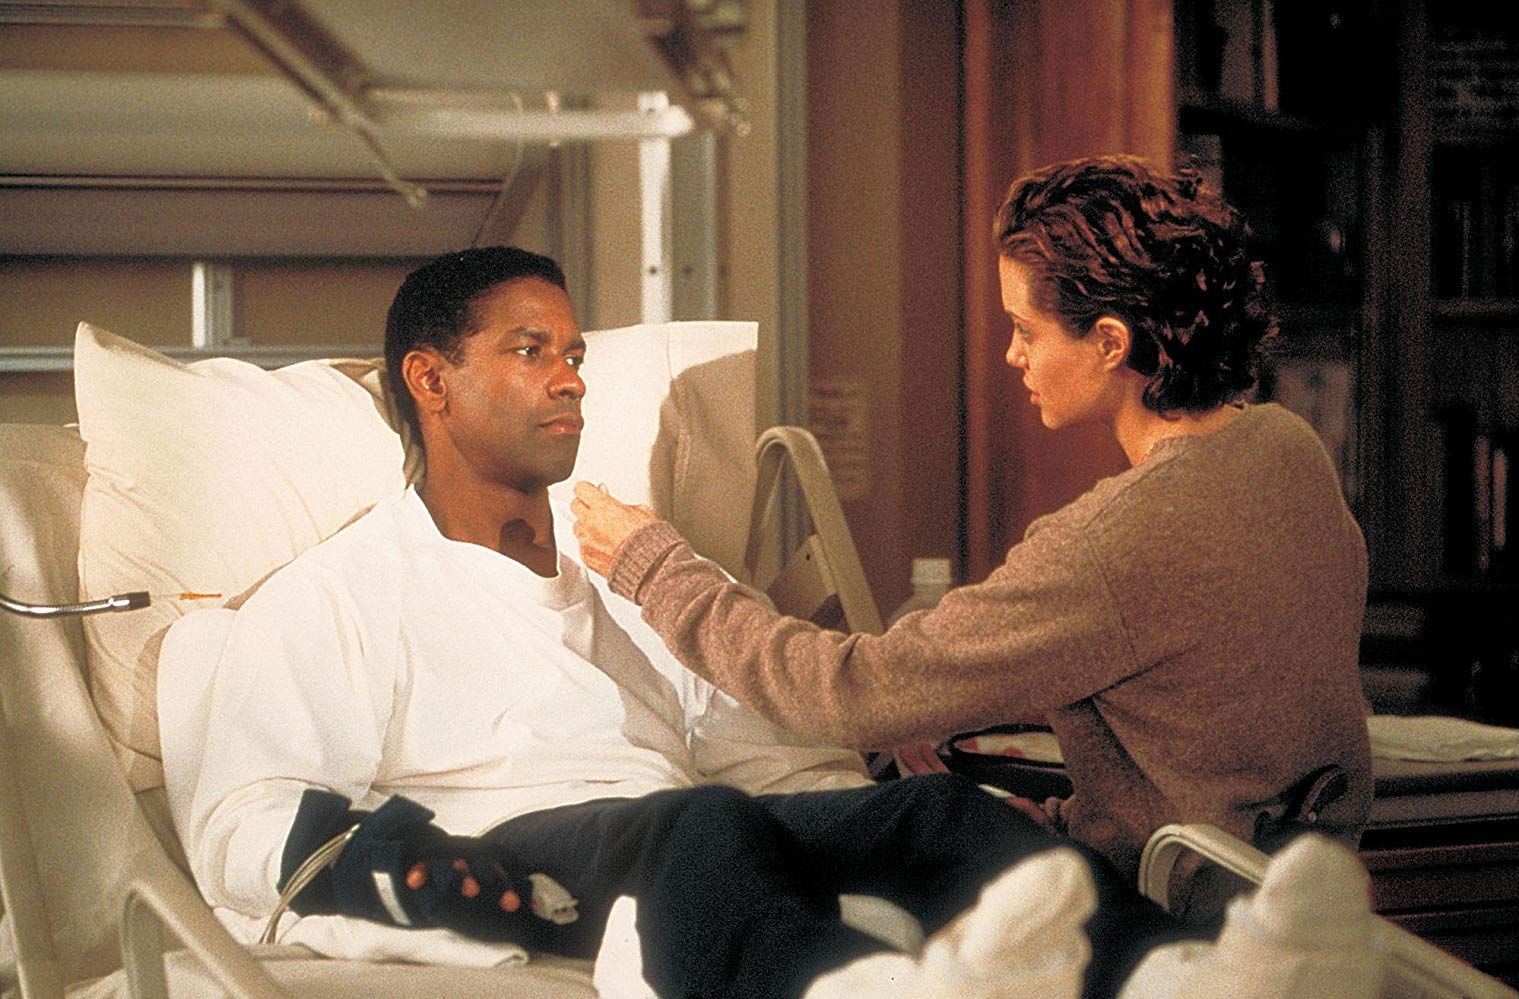 Denzel Washington as Lincoln Rhyme and Angelina Jolie as Amelia Donaghy in The Bone Collector (1999)